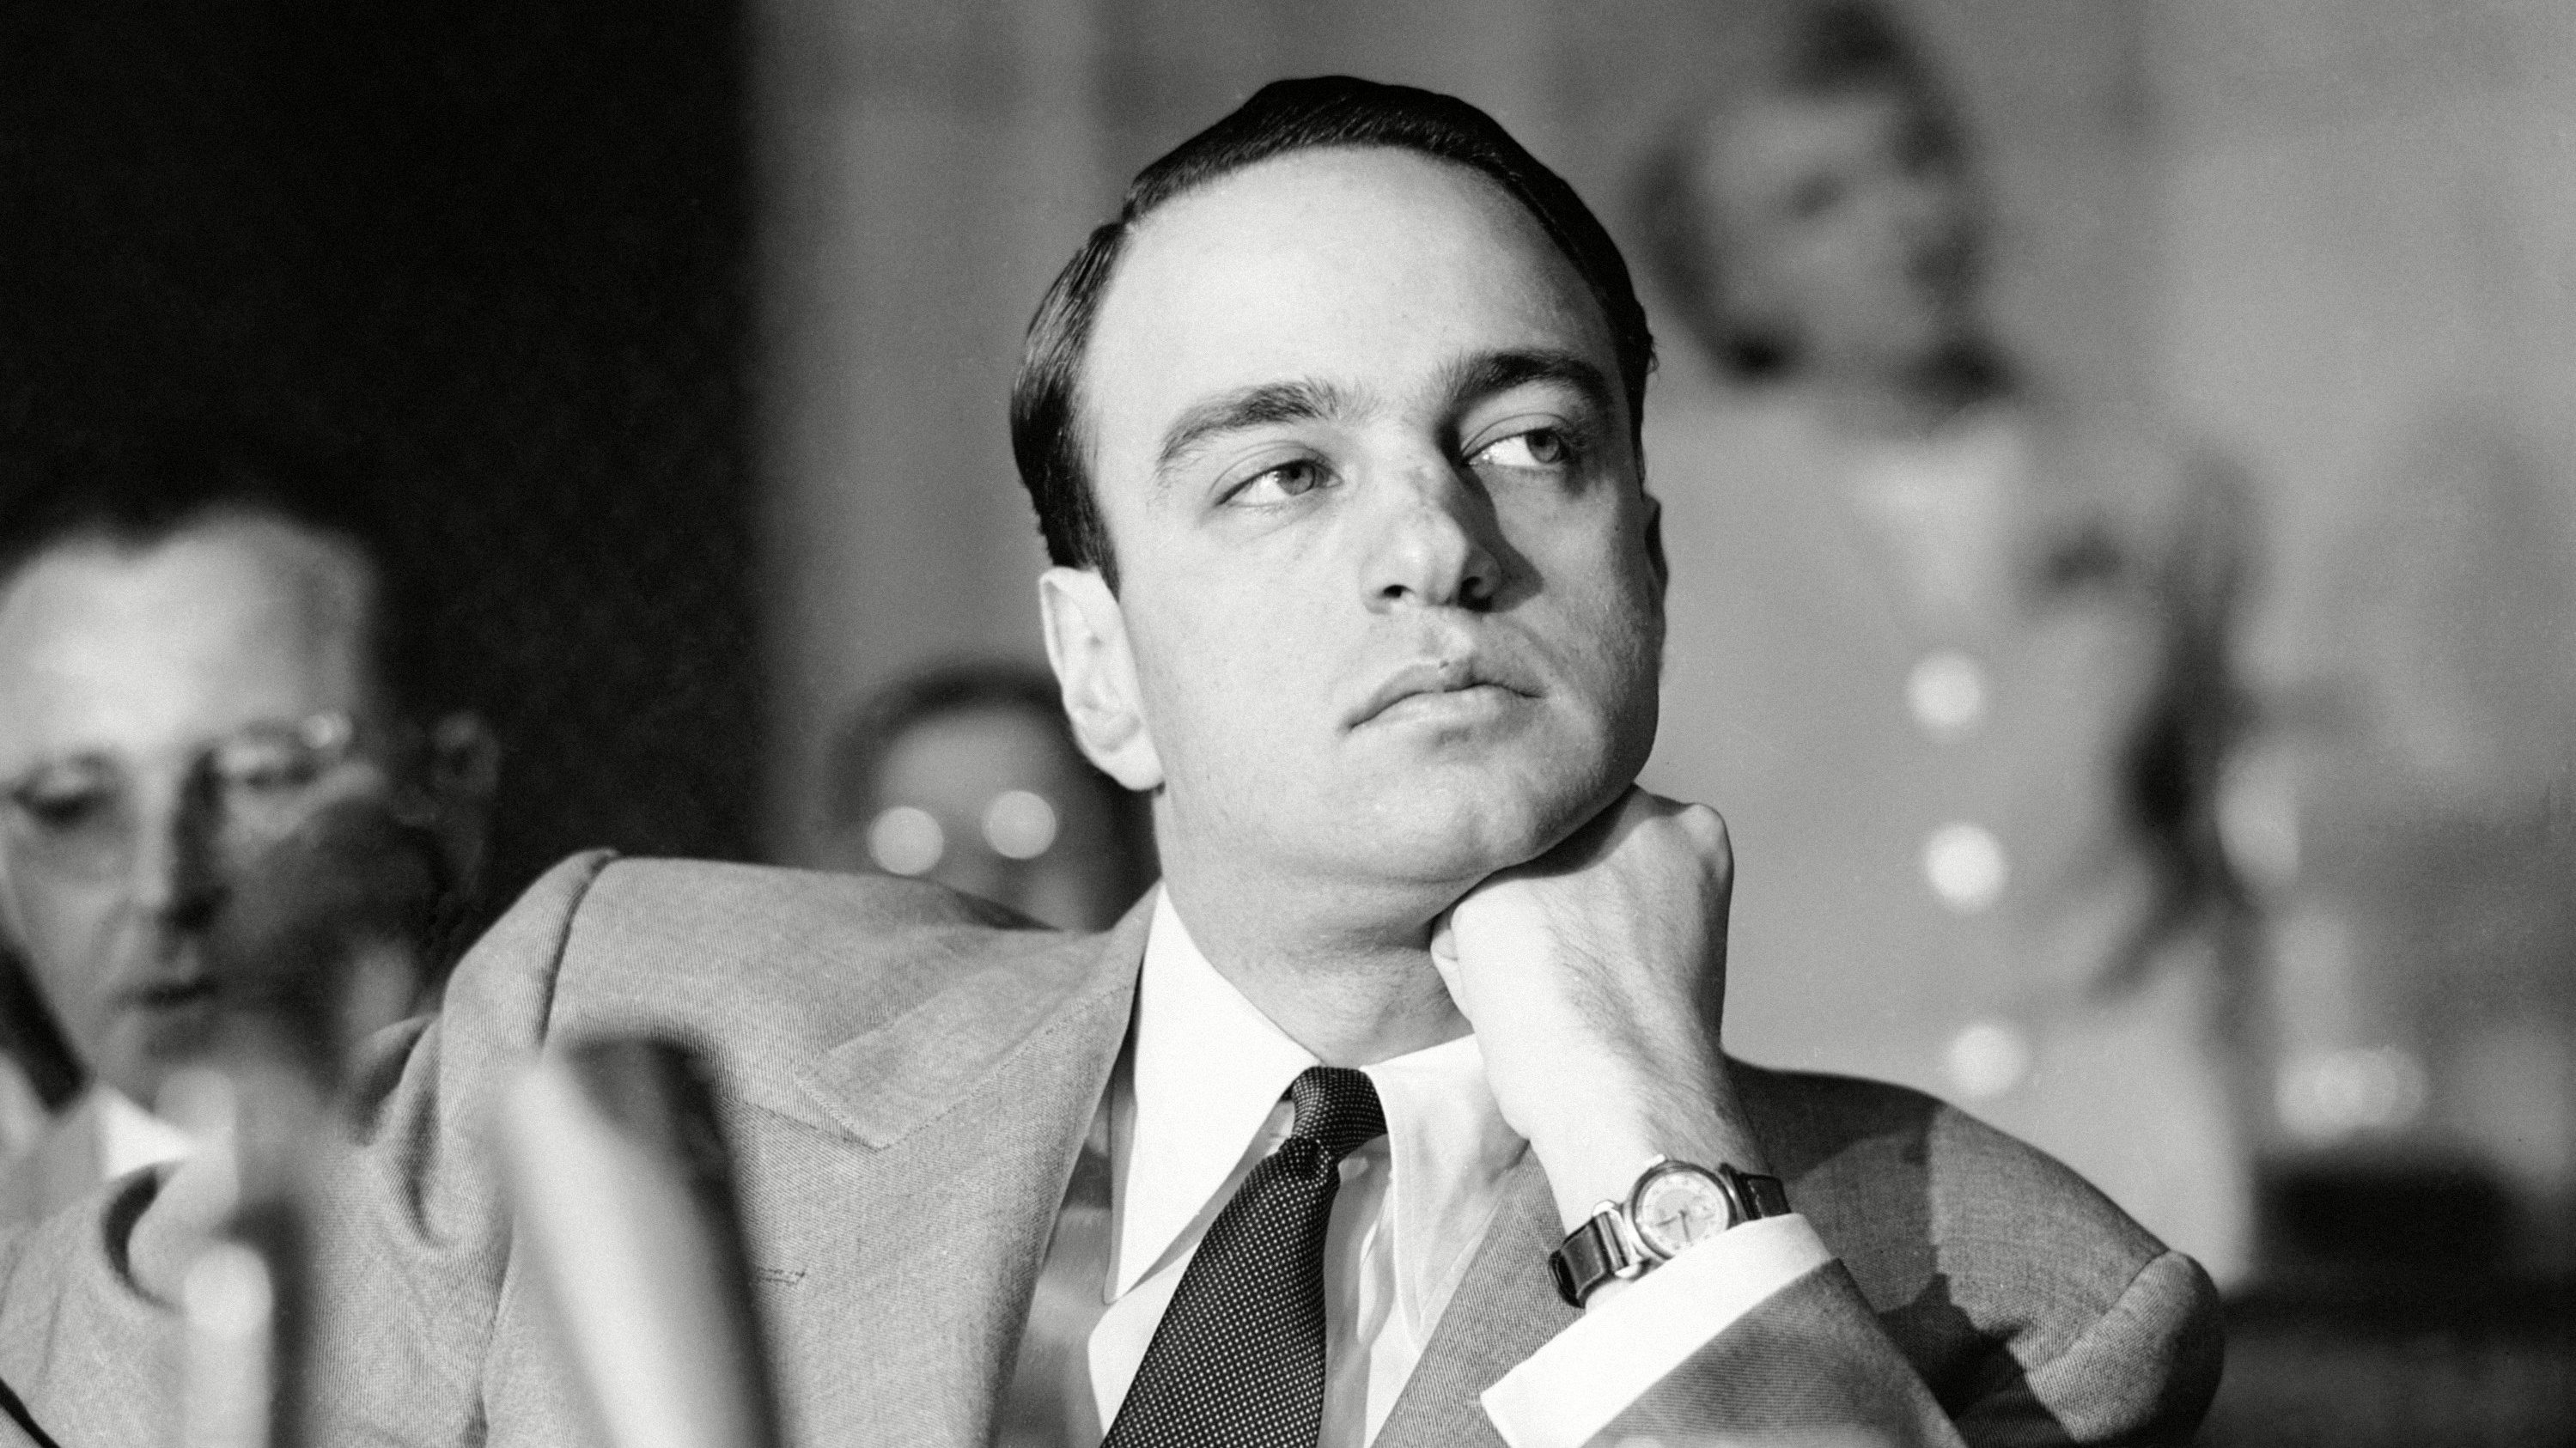 Documentary 'Where's My Roy Cohn?' Suggests He's Closer Than You Think